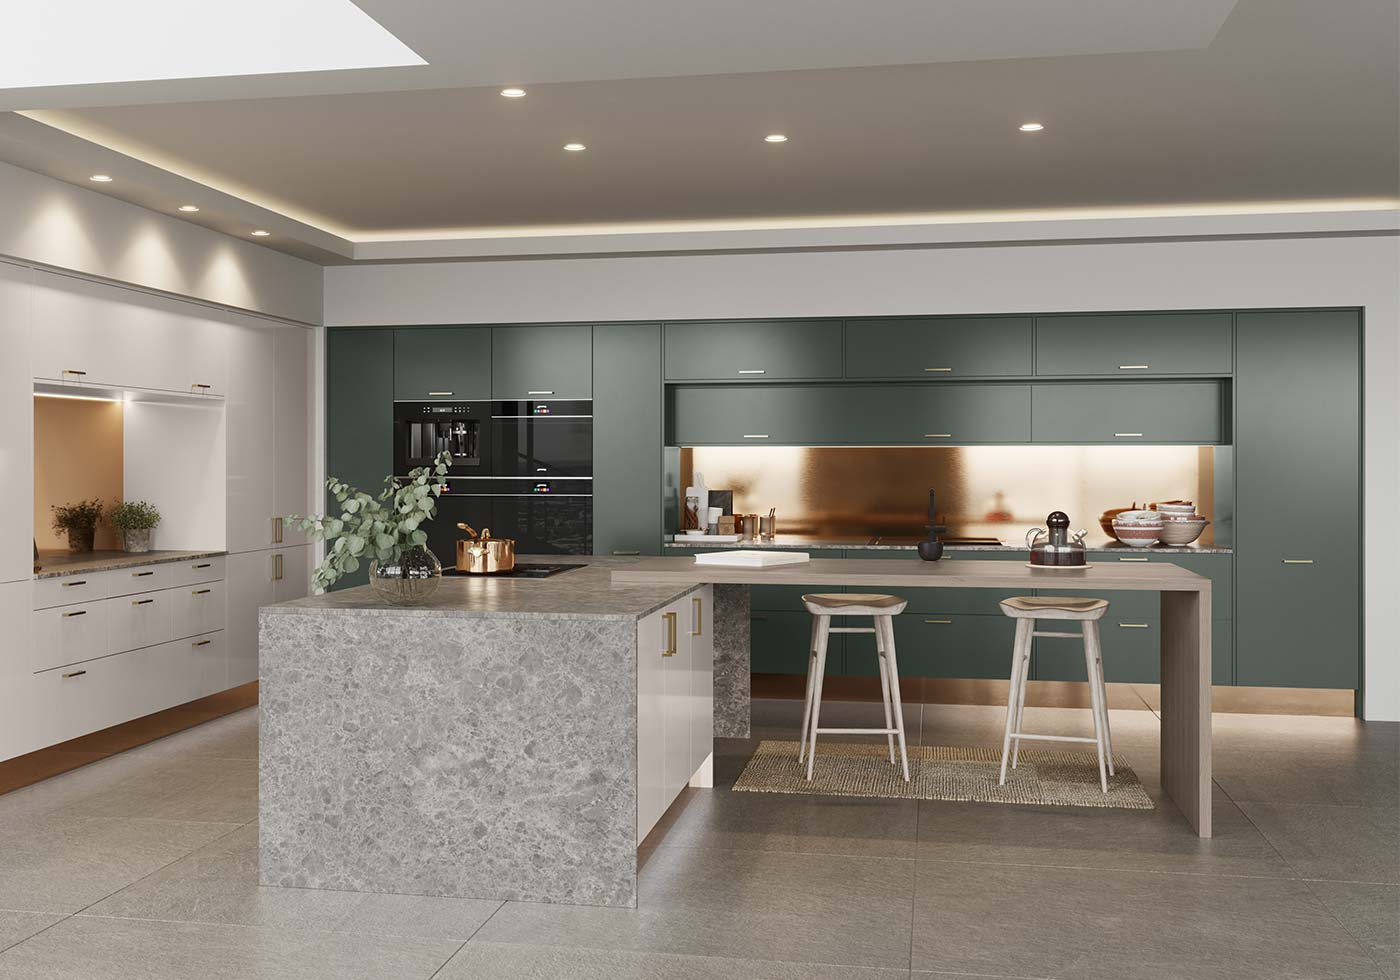 Green and copper modern kitchen by Sigma 3